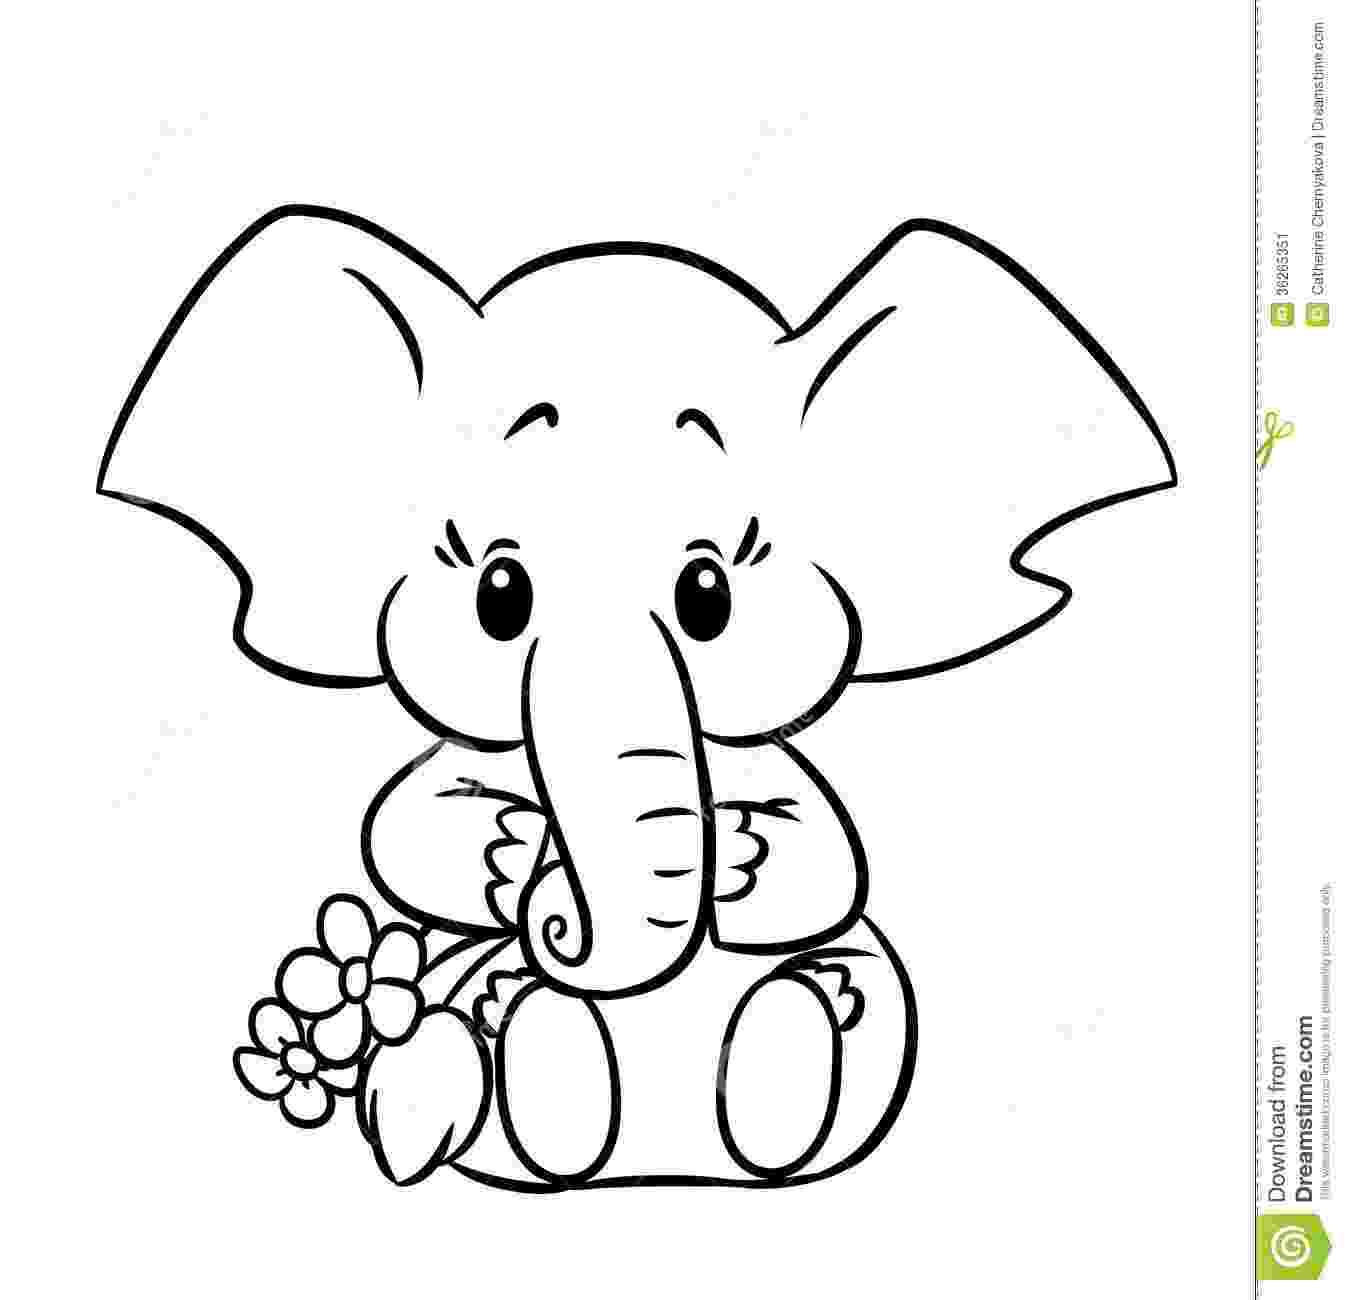 coloring pages elephants circus elephant coloring pages ideas to kids coloring elephants pages